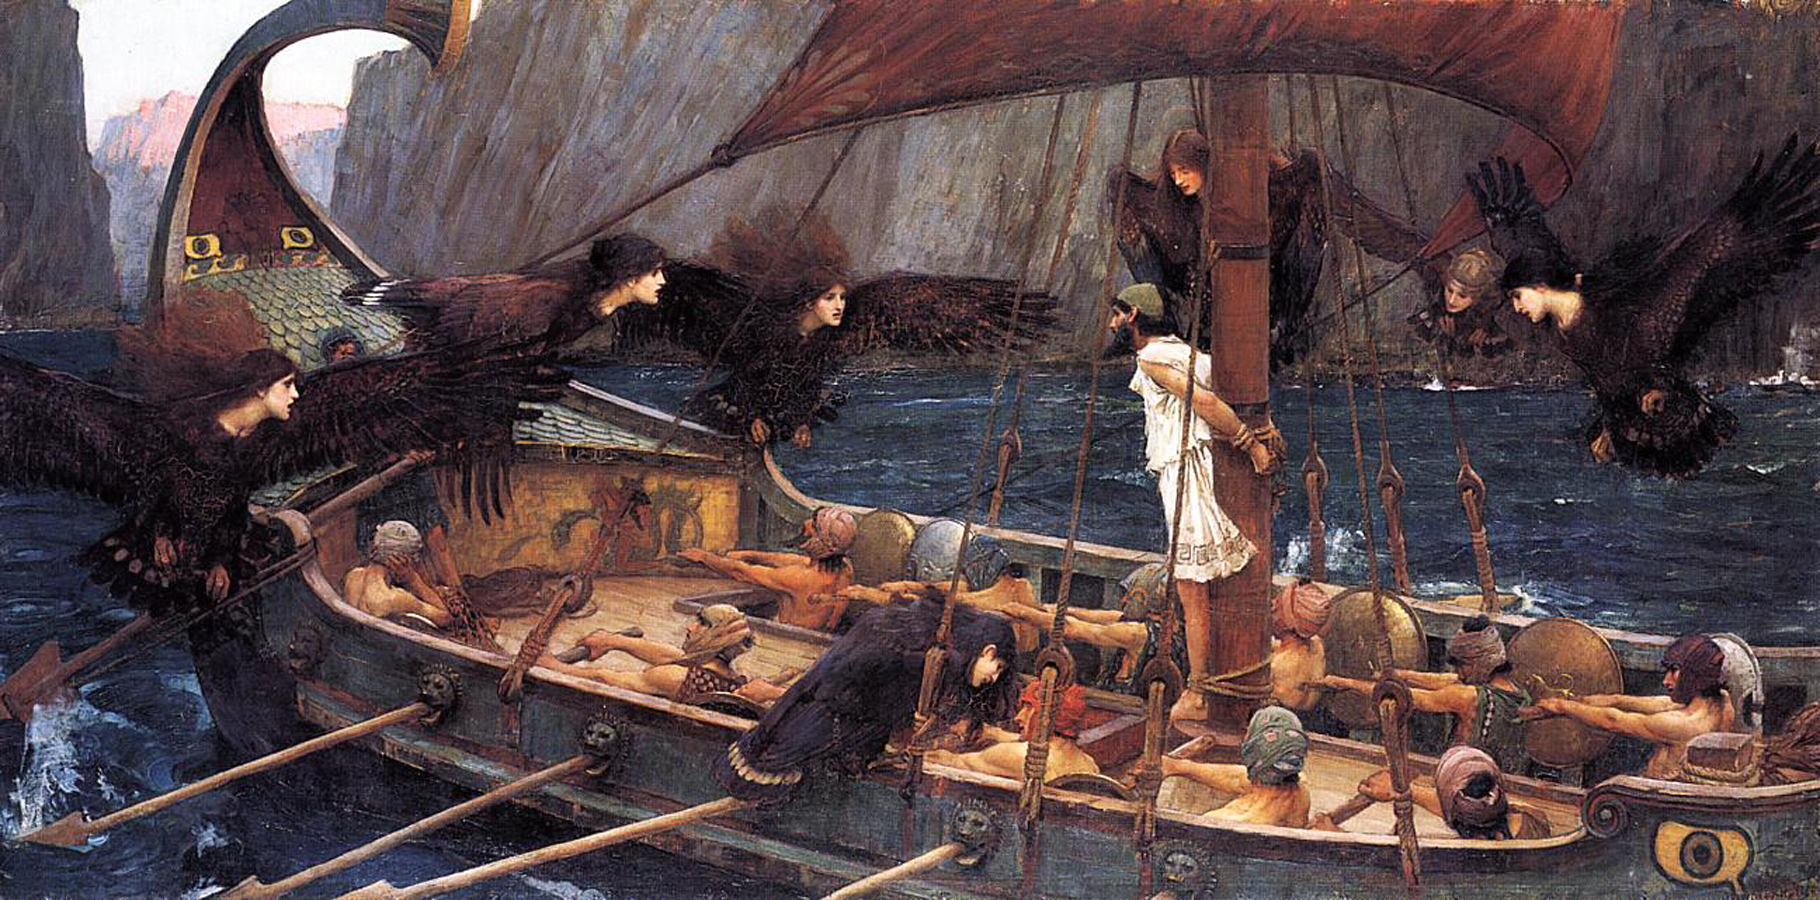 the odyssey and siren song The ship speeds forward and soon the song of the sirens is an echo of an echo only then do the crew members stop rowing and unplug their ears eurylochus unbinds his grateful captain.